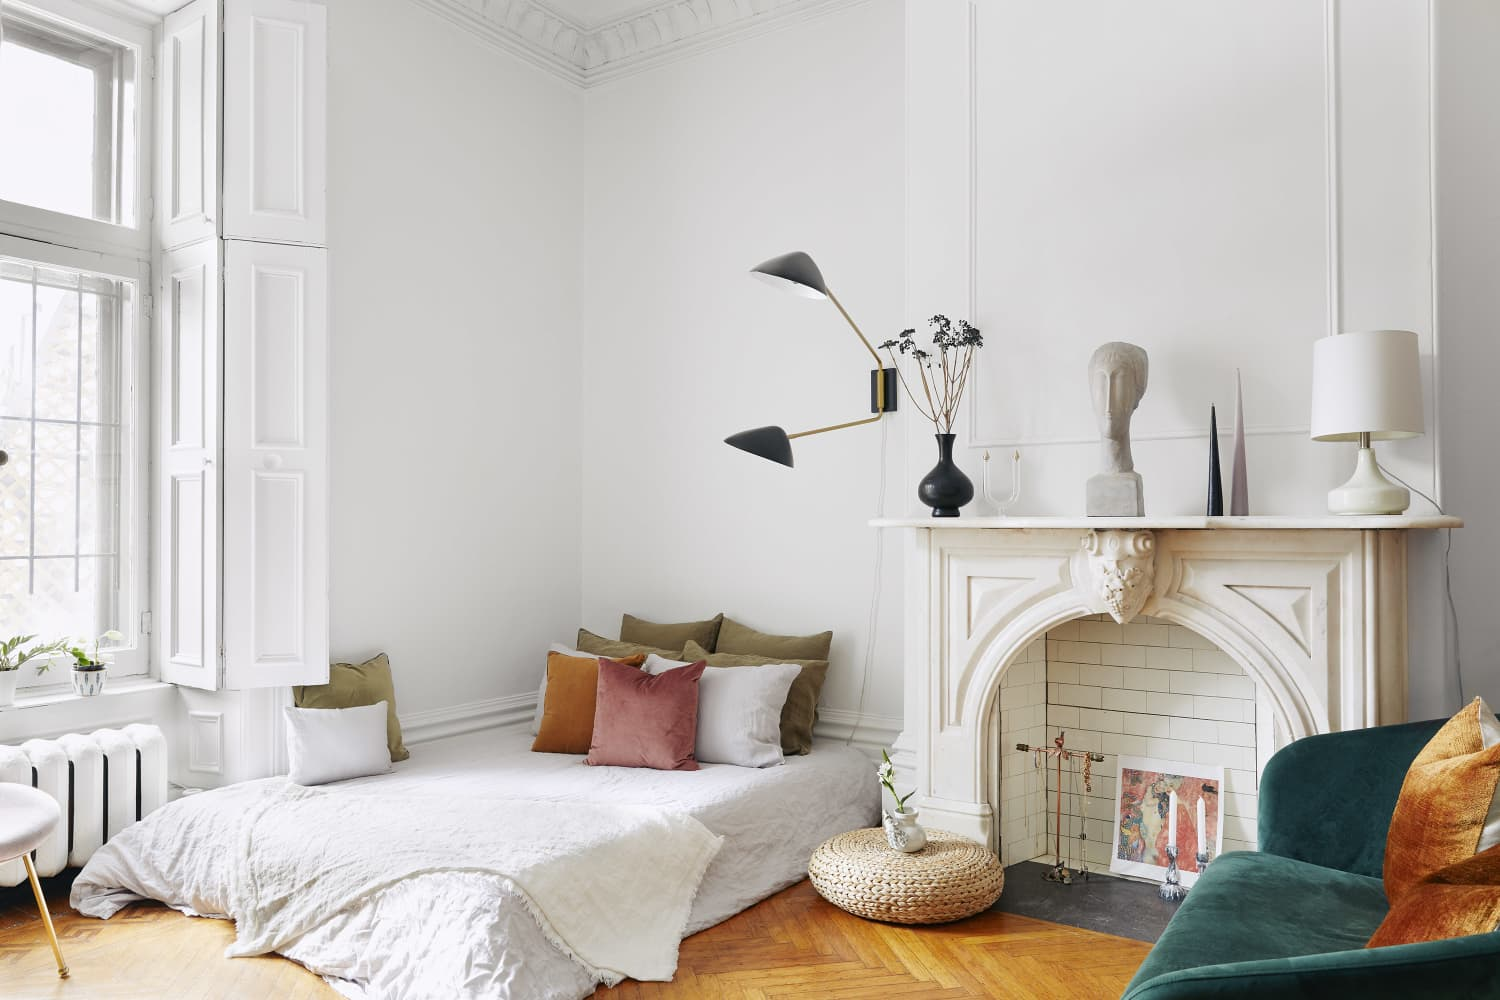 This Easy Bed Placement Trick Will Max Out Your Bedroom's Square Footage Instantly